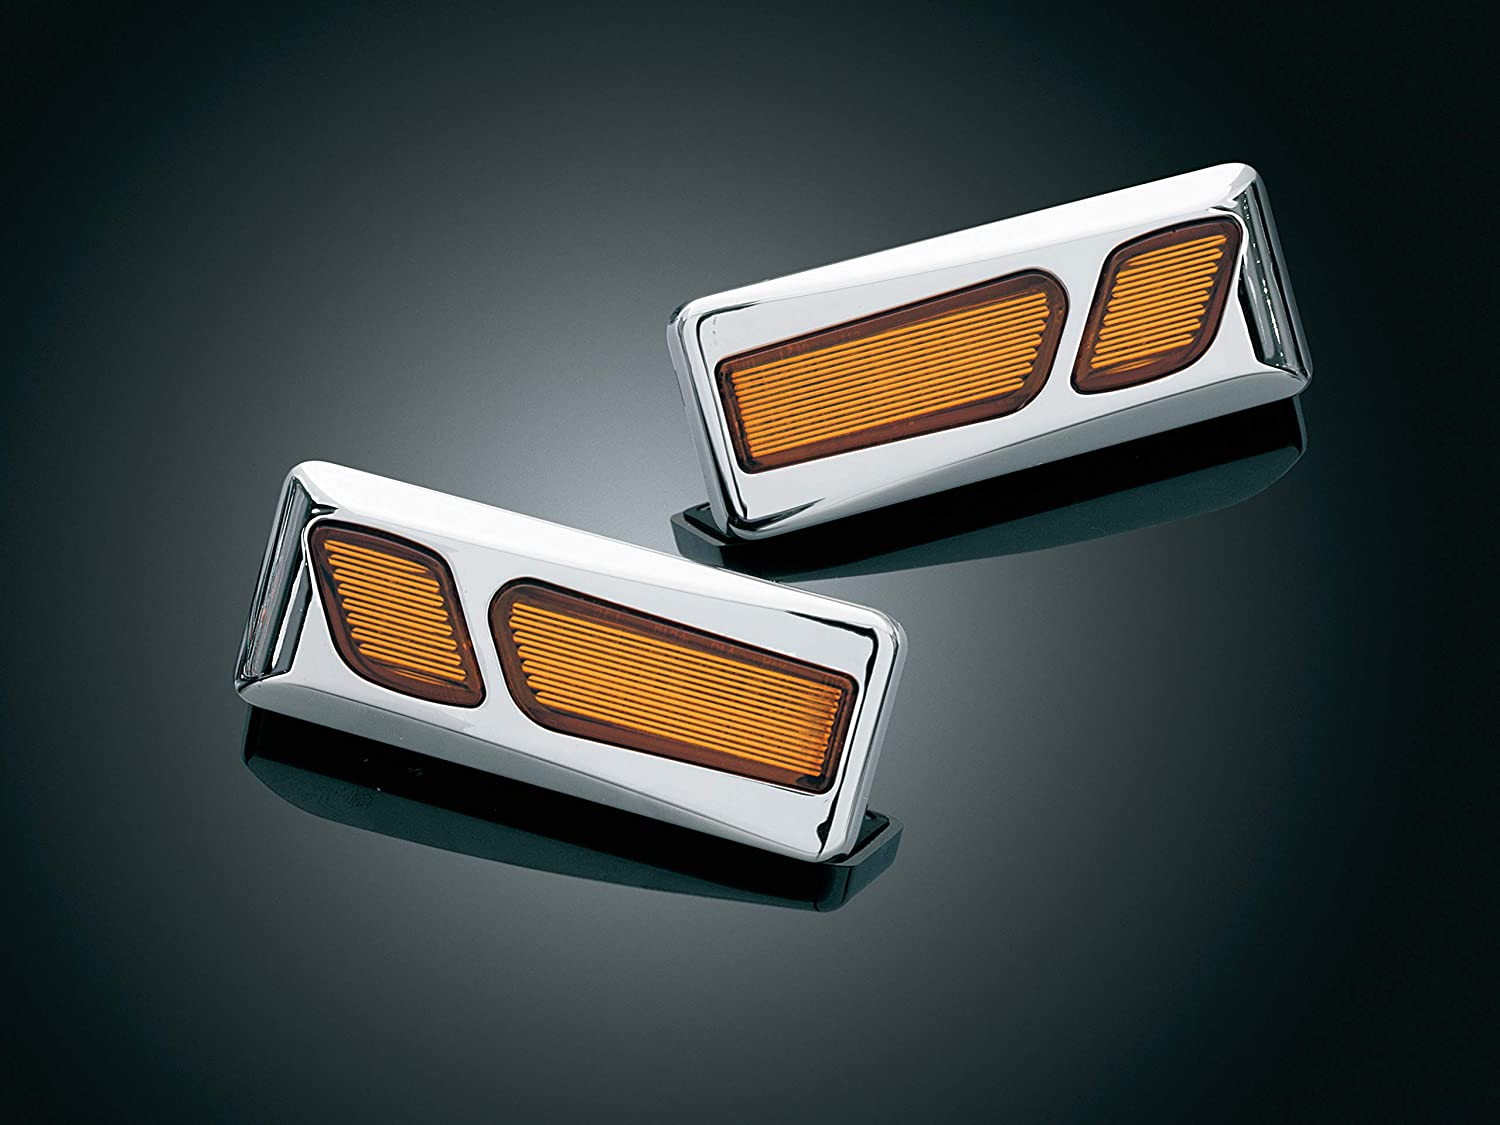 New Shipping Free Shipping Kuryakyn 7455 Motorcycle Lighting Accent Front Max 82% OFF Re LED Accessory: